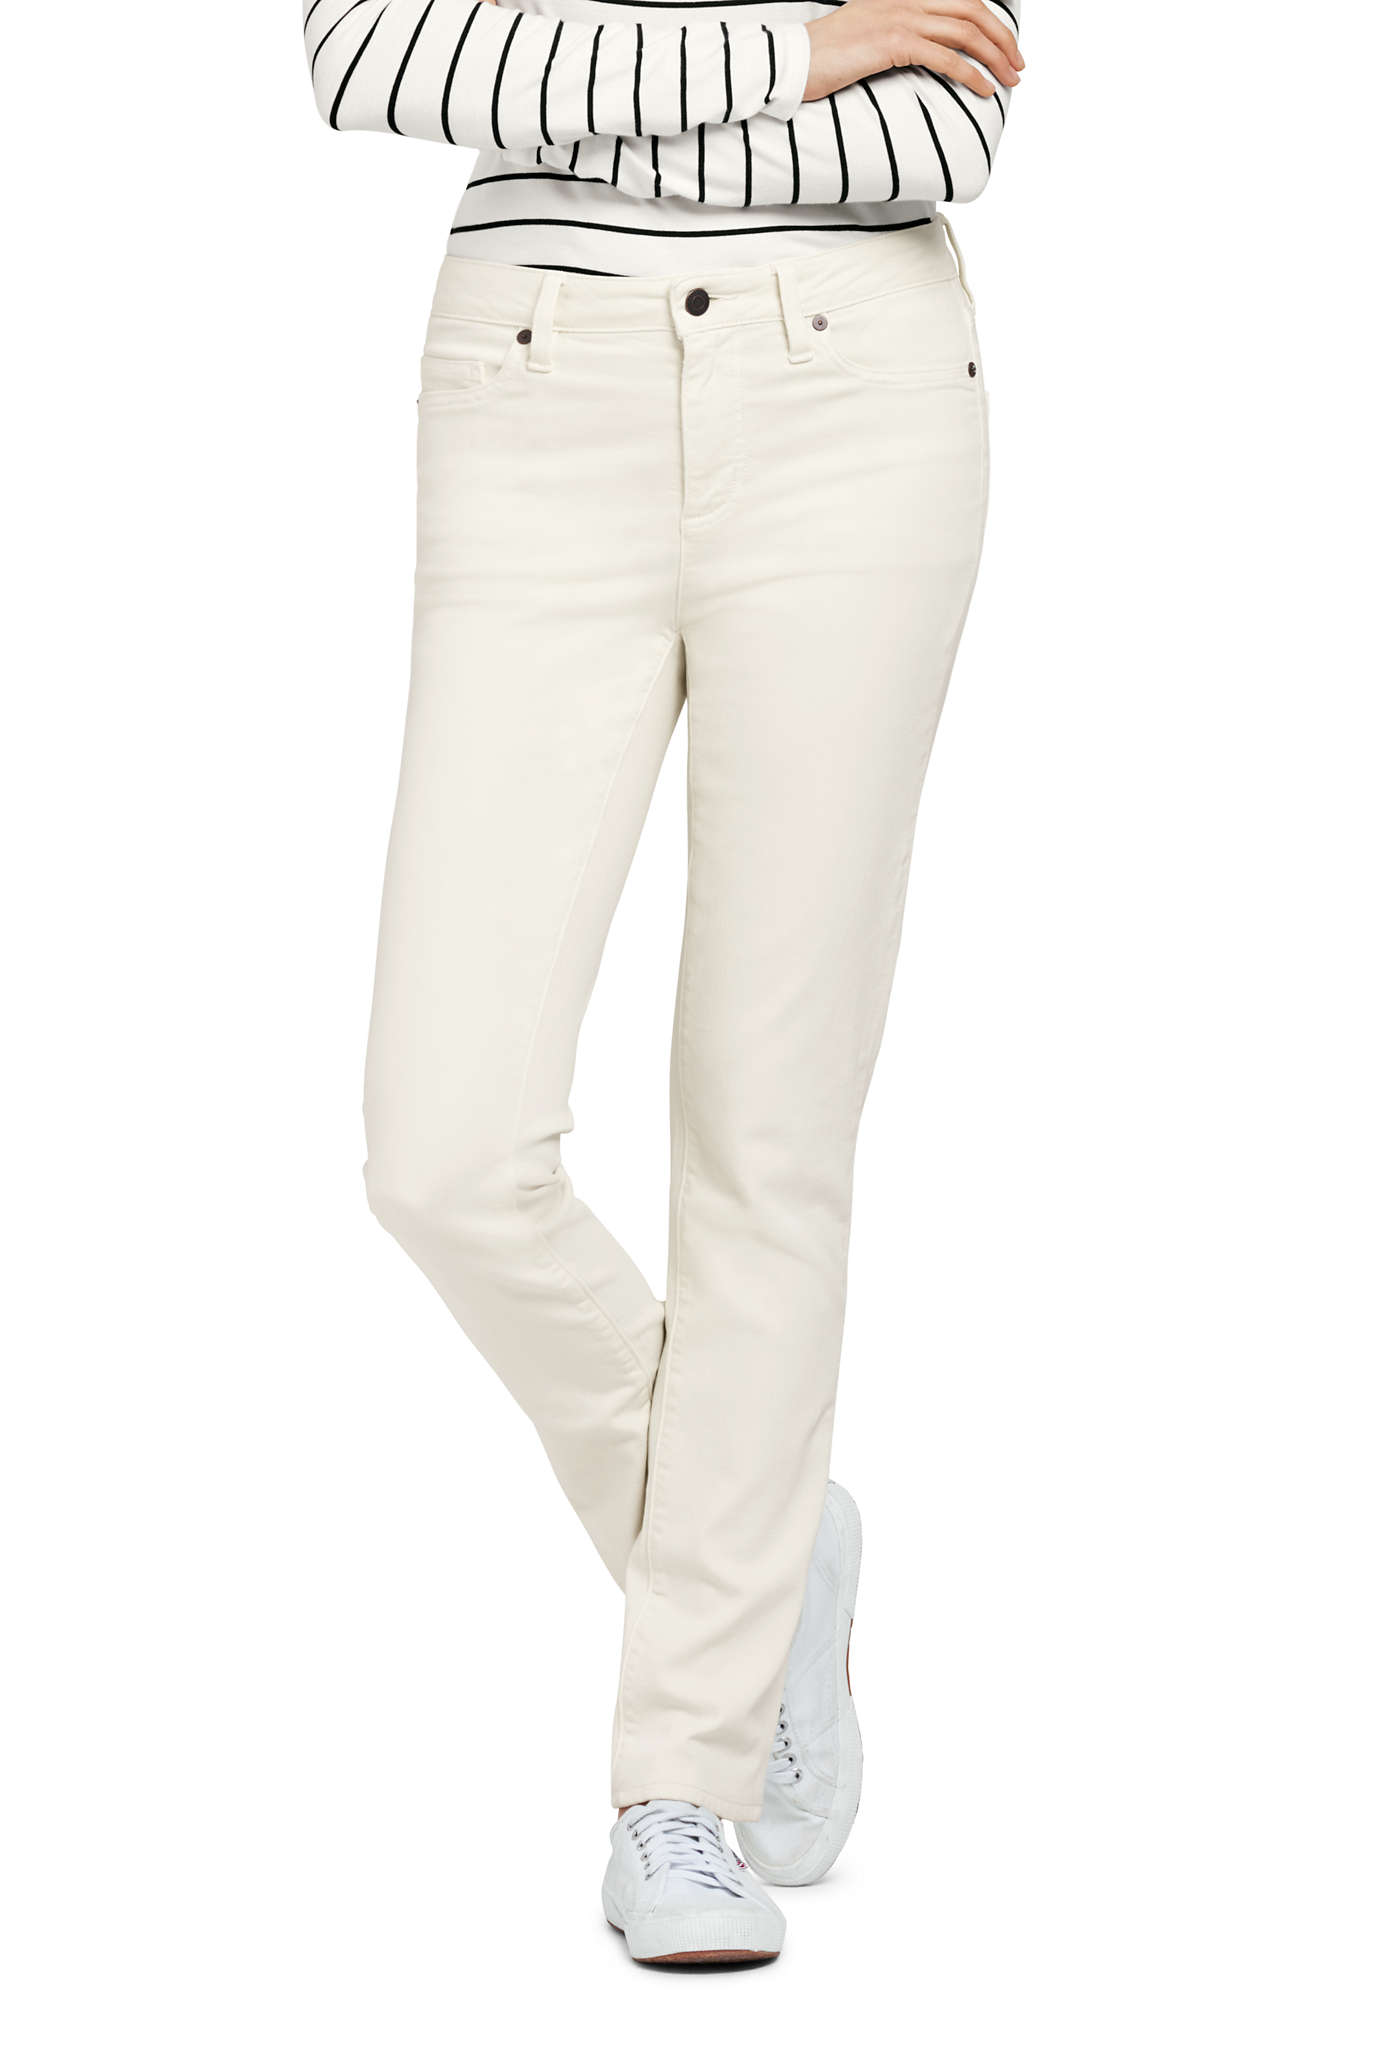 2d448a4fa3d5 Casual Women's Jeans, Straight Leg Jeans, Women's Bootcut Jeans ...